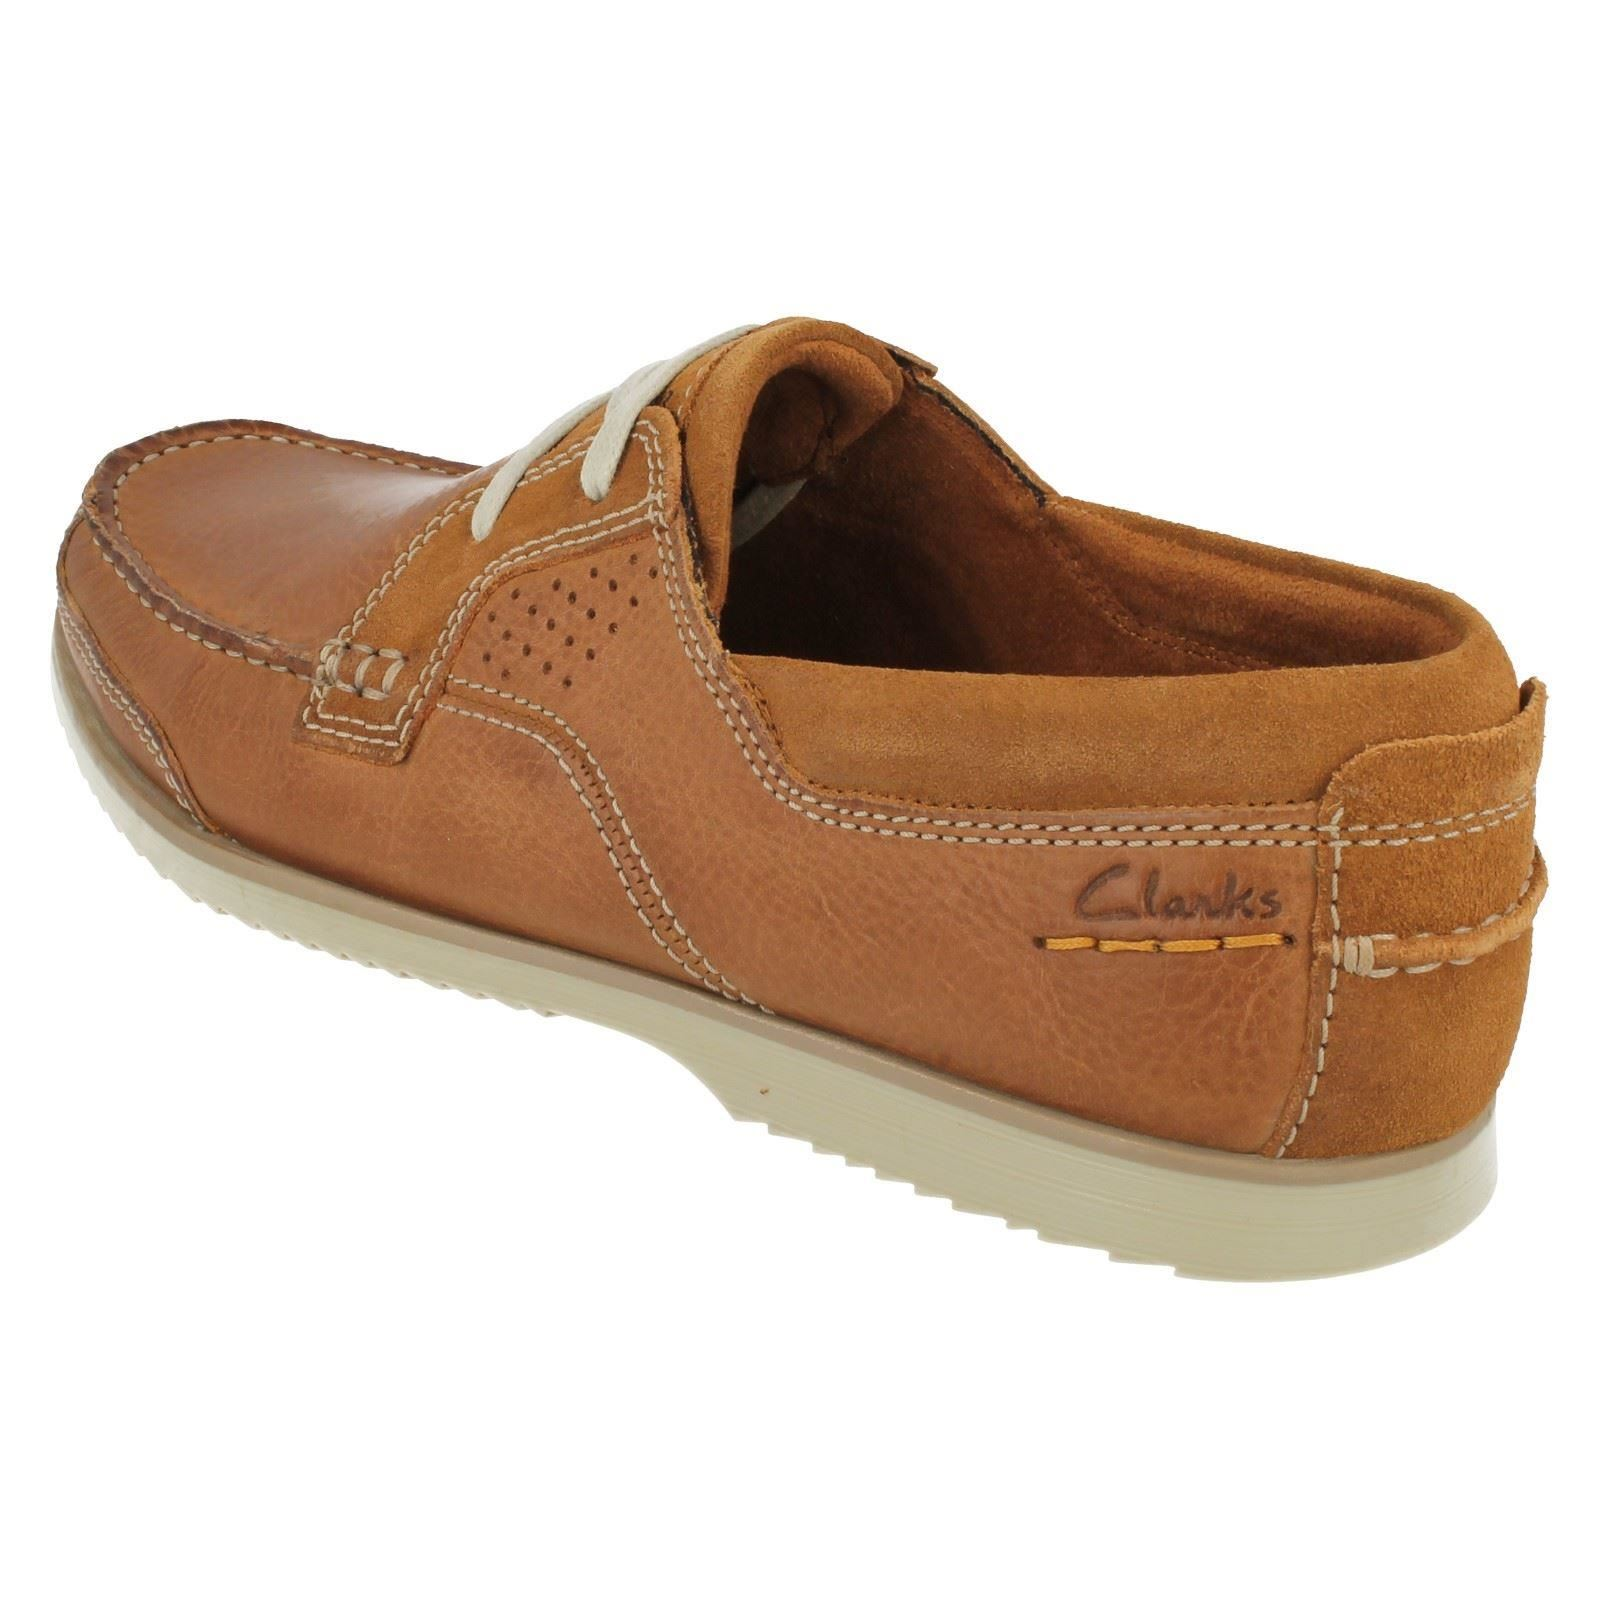 Uomo Clarks Schuhes Casual Deck Schuhes Clarks Kendrick Sail 2ec73a